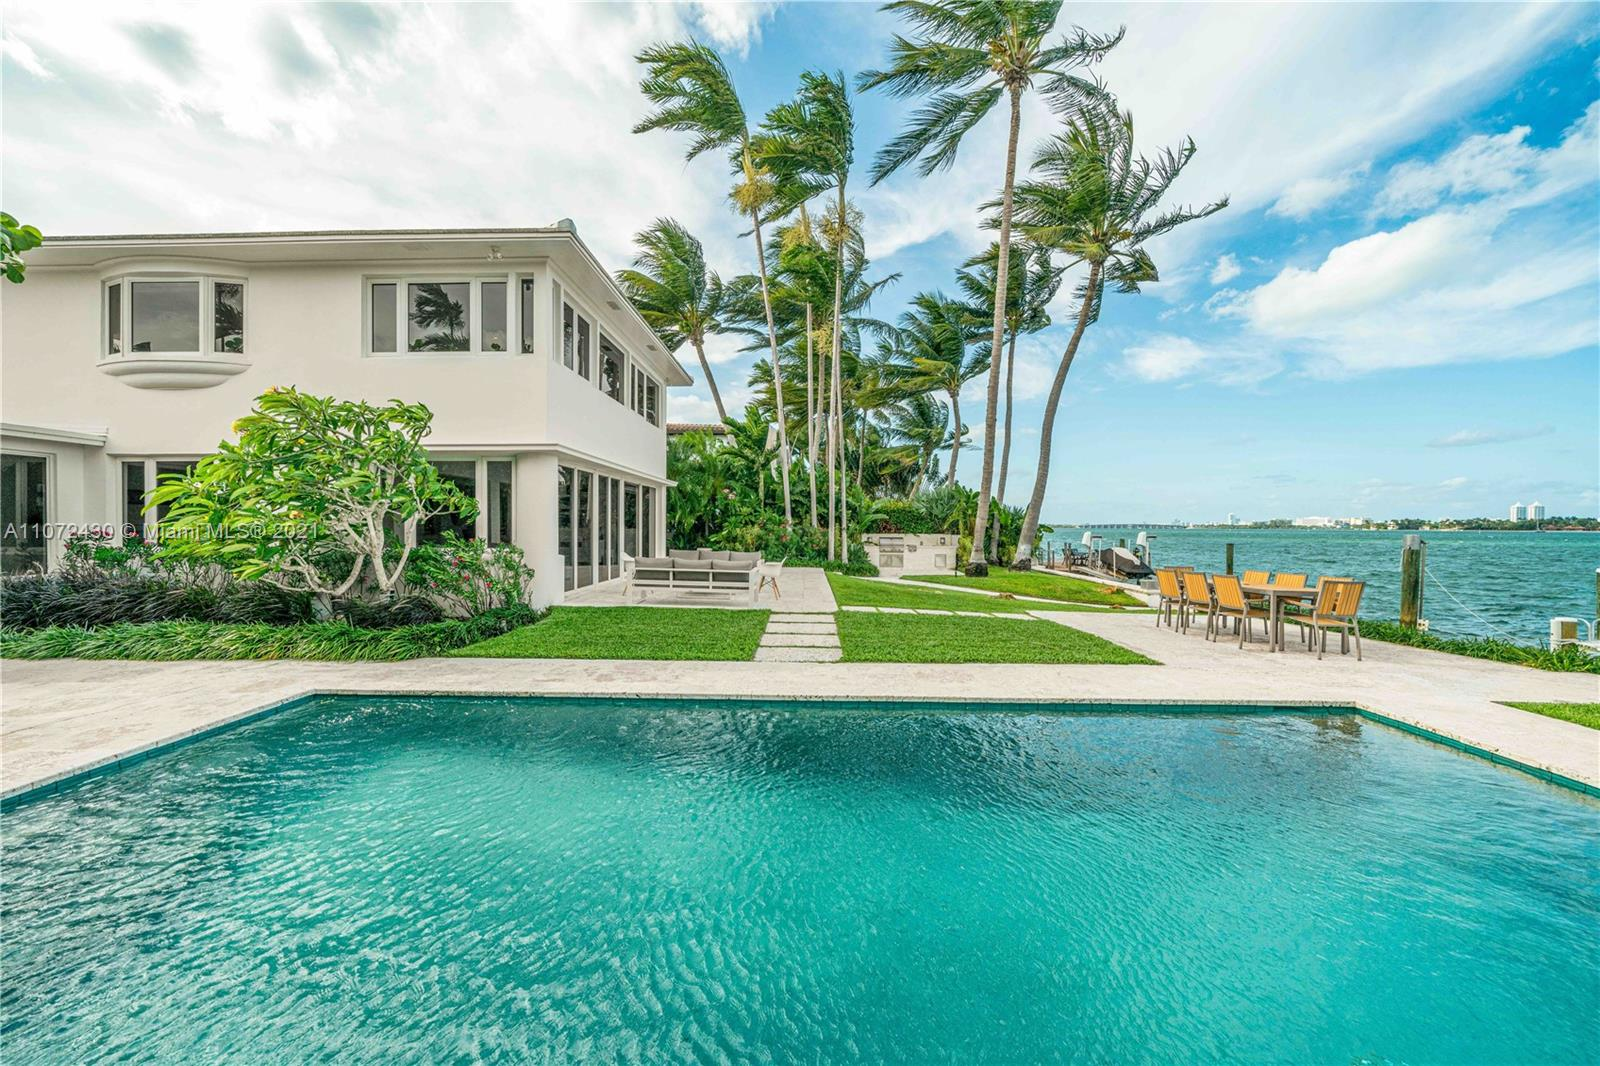 Mid Century Modern Home on the prestigious Venetian Islands. This timeless masterpiece was renovated by the renowned real estate developer Todd Michael Glaser in 2020. A rare find, this gem is located on an oversized Lot with 90' of water frontage. Northeast Views & an incredible ocean breeze accompany this remarkable residence. Private dock can accommodate an 80' boat. Please allow 24-hour notice for showings.